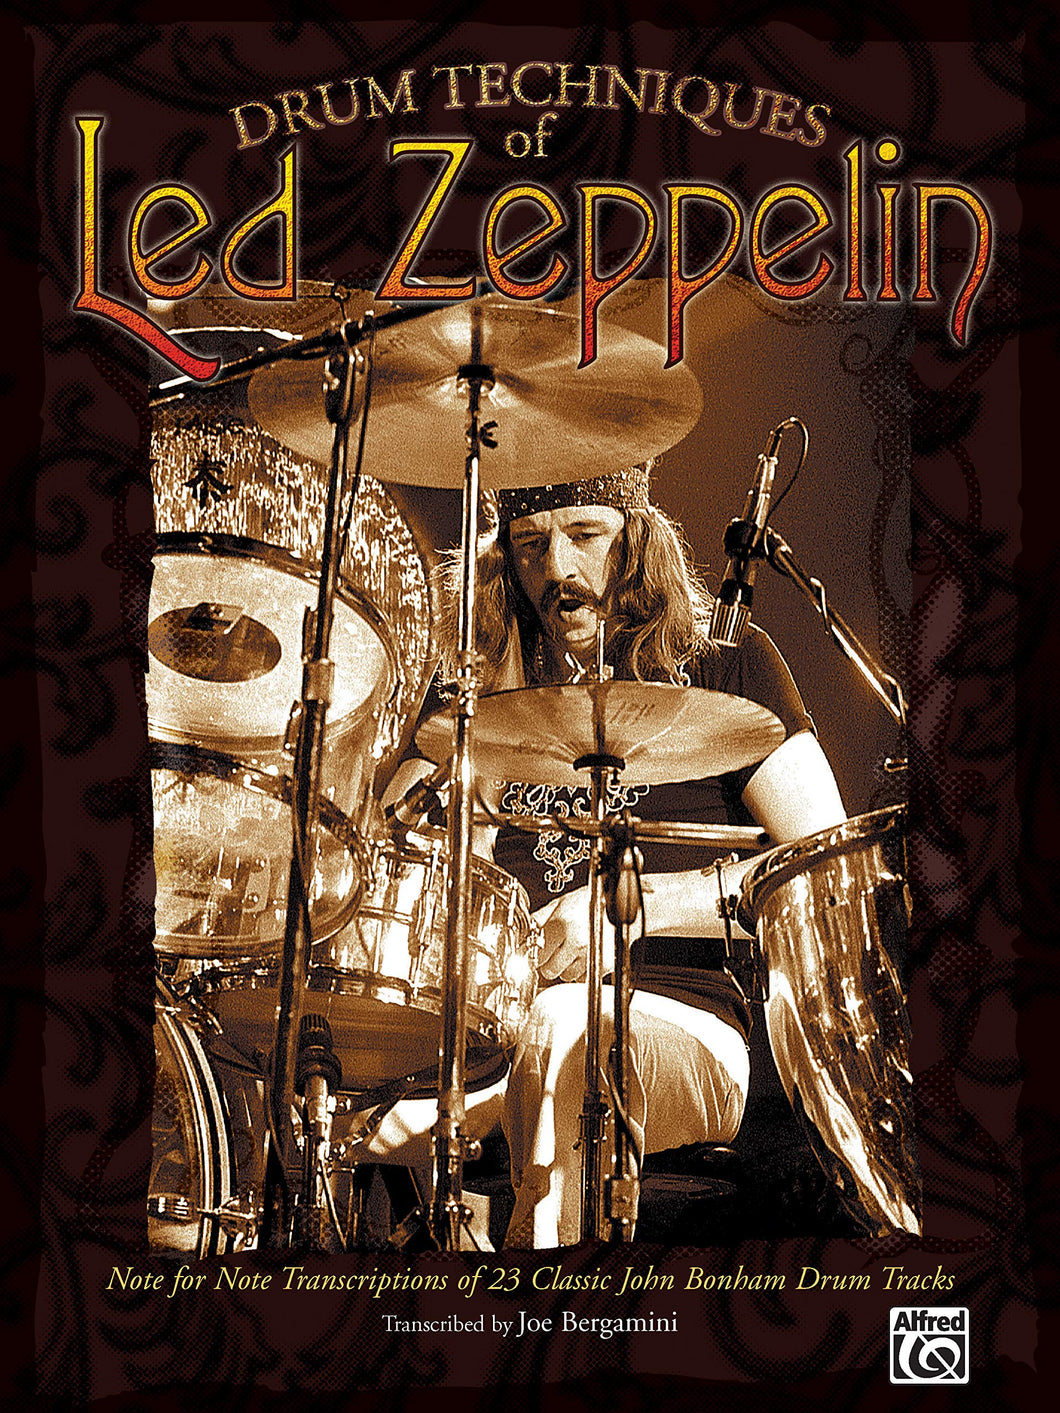 Over The Hills And Far Away - Led Zeppelin - Collection of Drum Transcriptions / Drum Sheet Music - Alfred Music DTLZNFNT